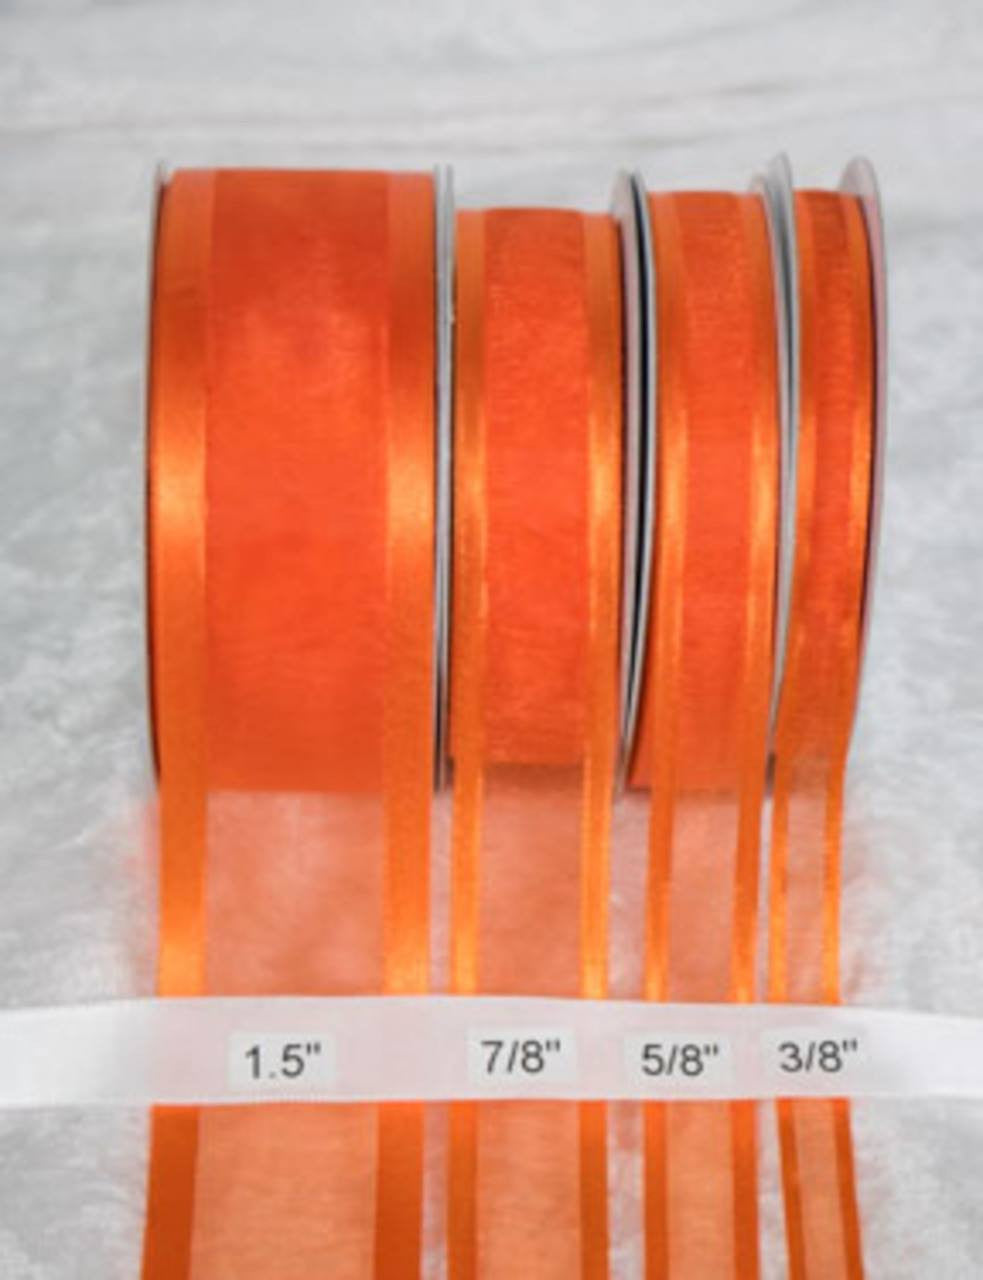 "25 yards-Orange w/ Satin Trim Ribbon (3/8"", 5/8"", 7/8"", 1.5"" )"